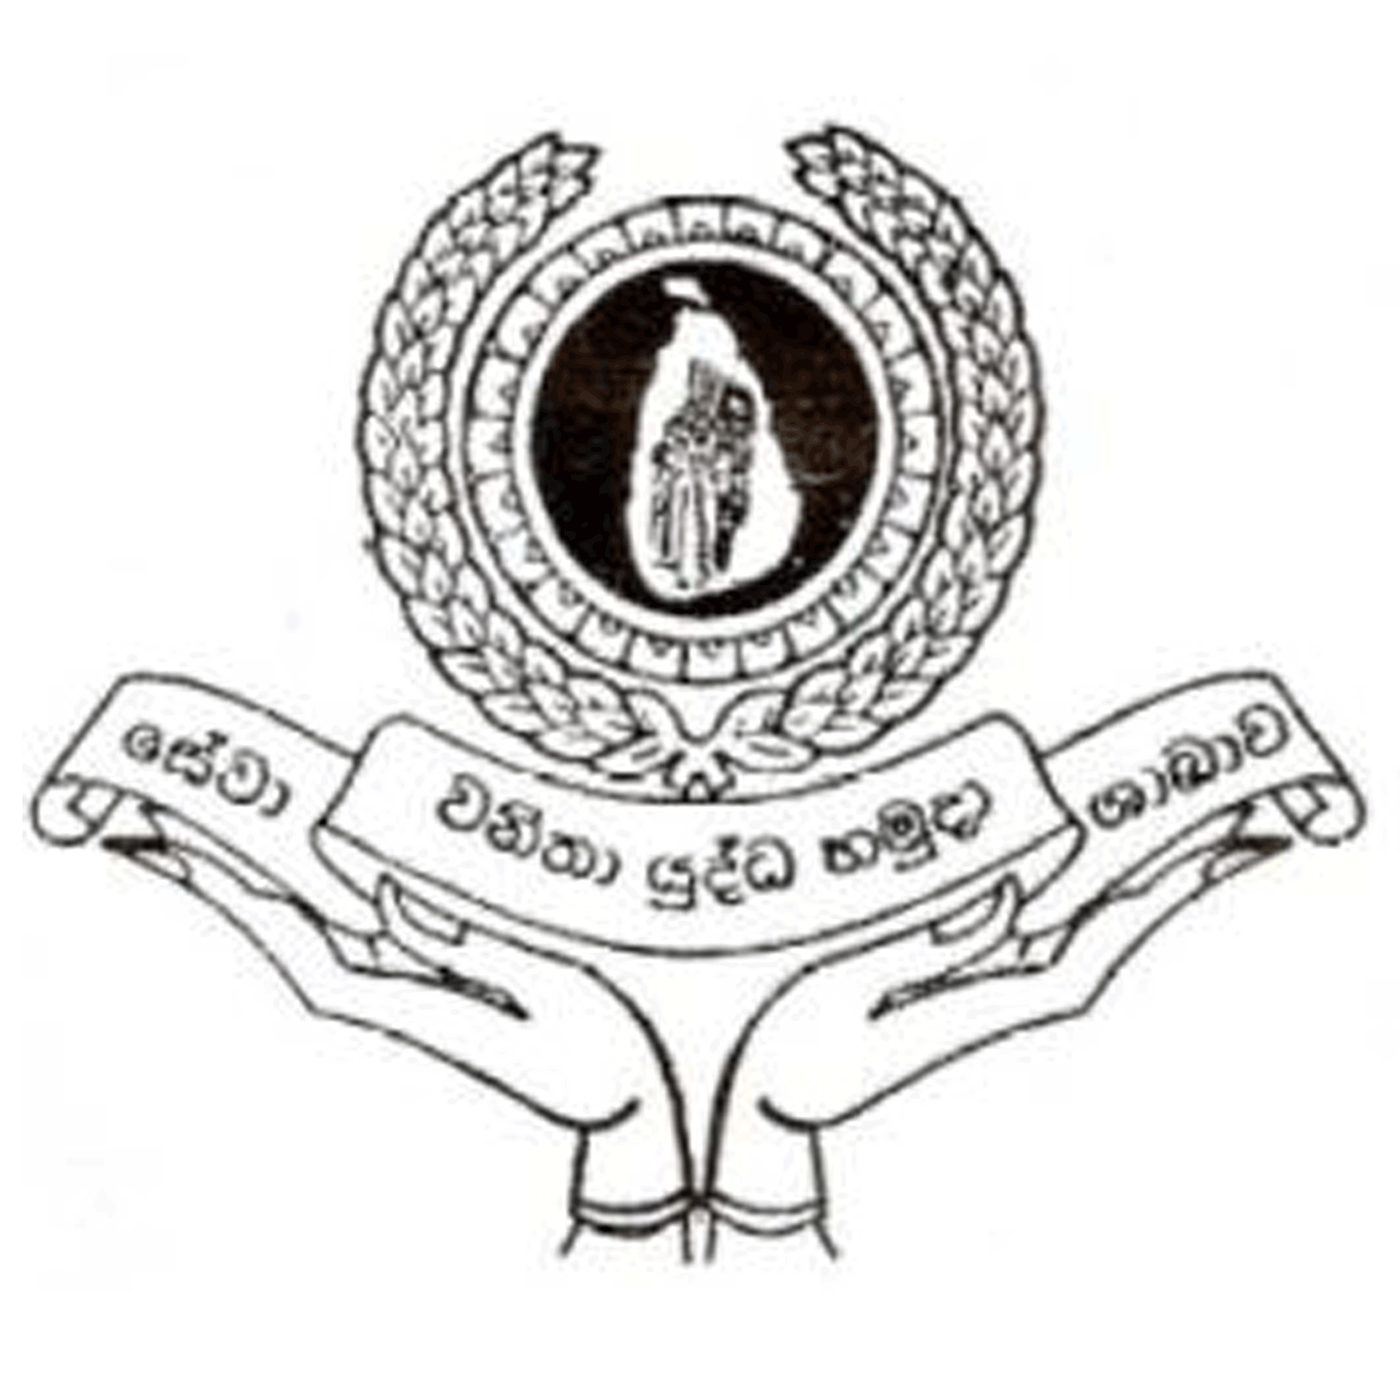 Voice of Sri Lanka